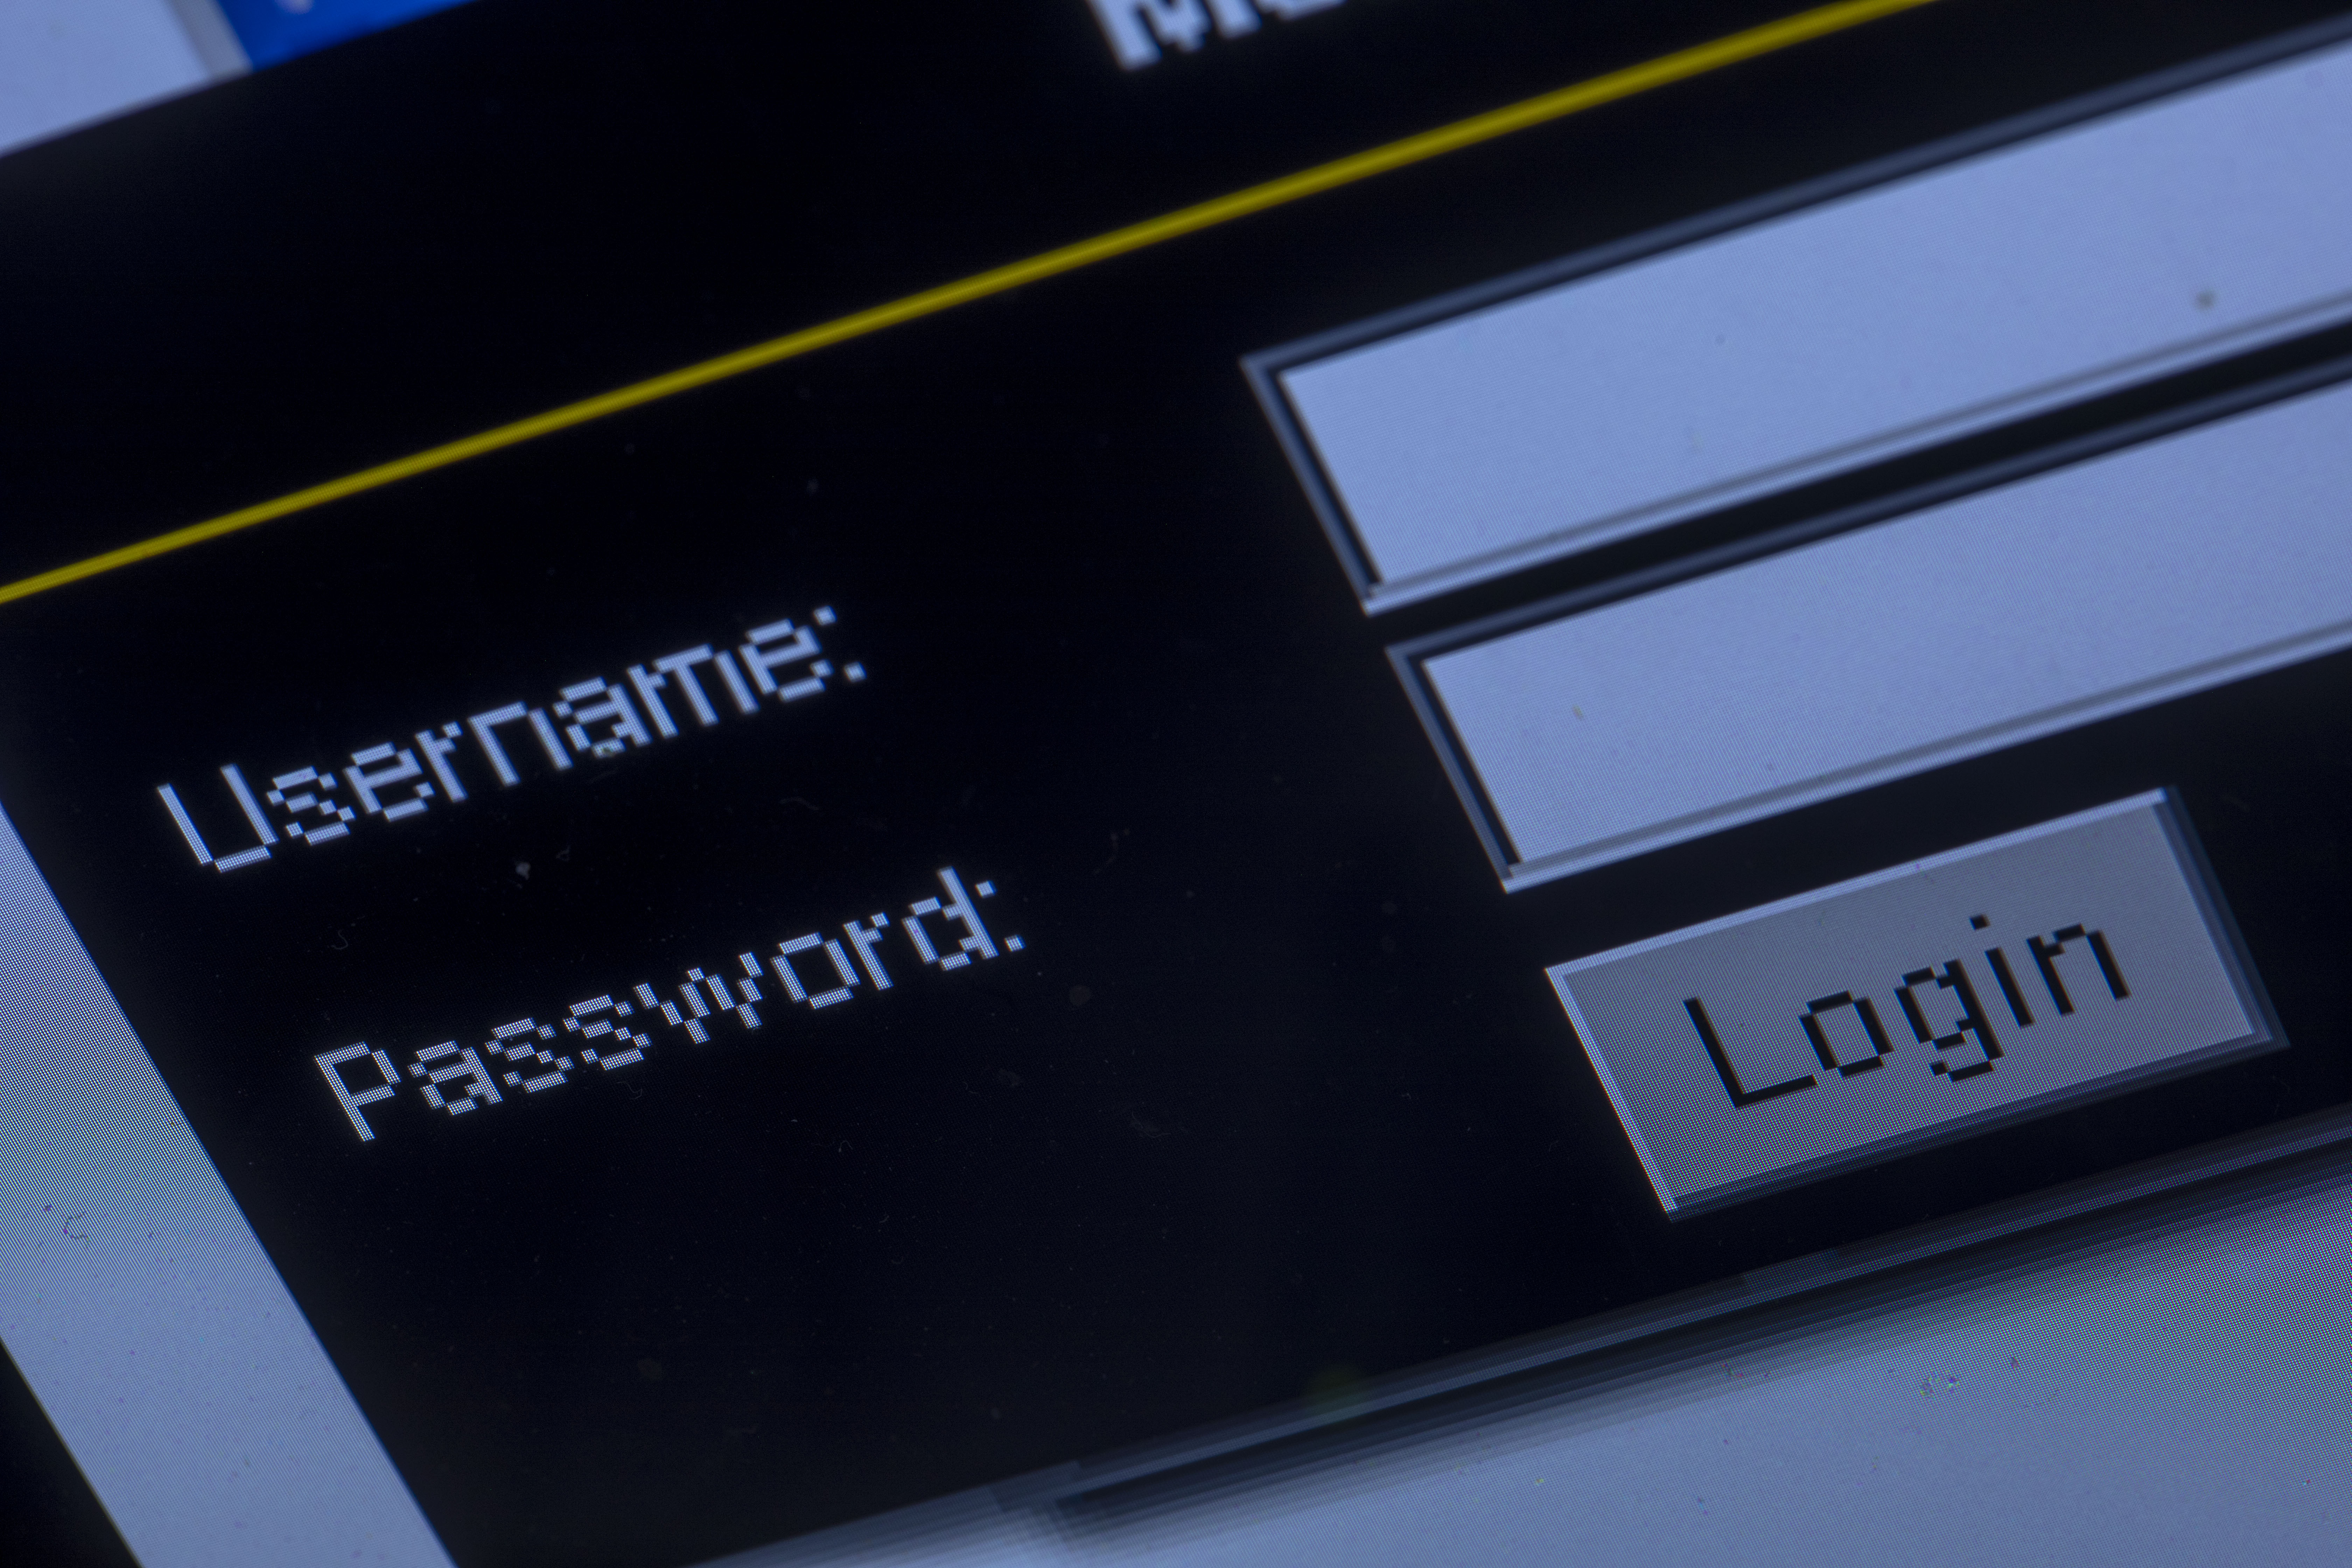 Citrix says its network was breached by international